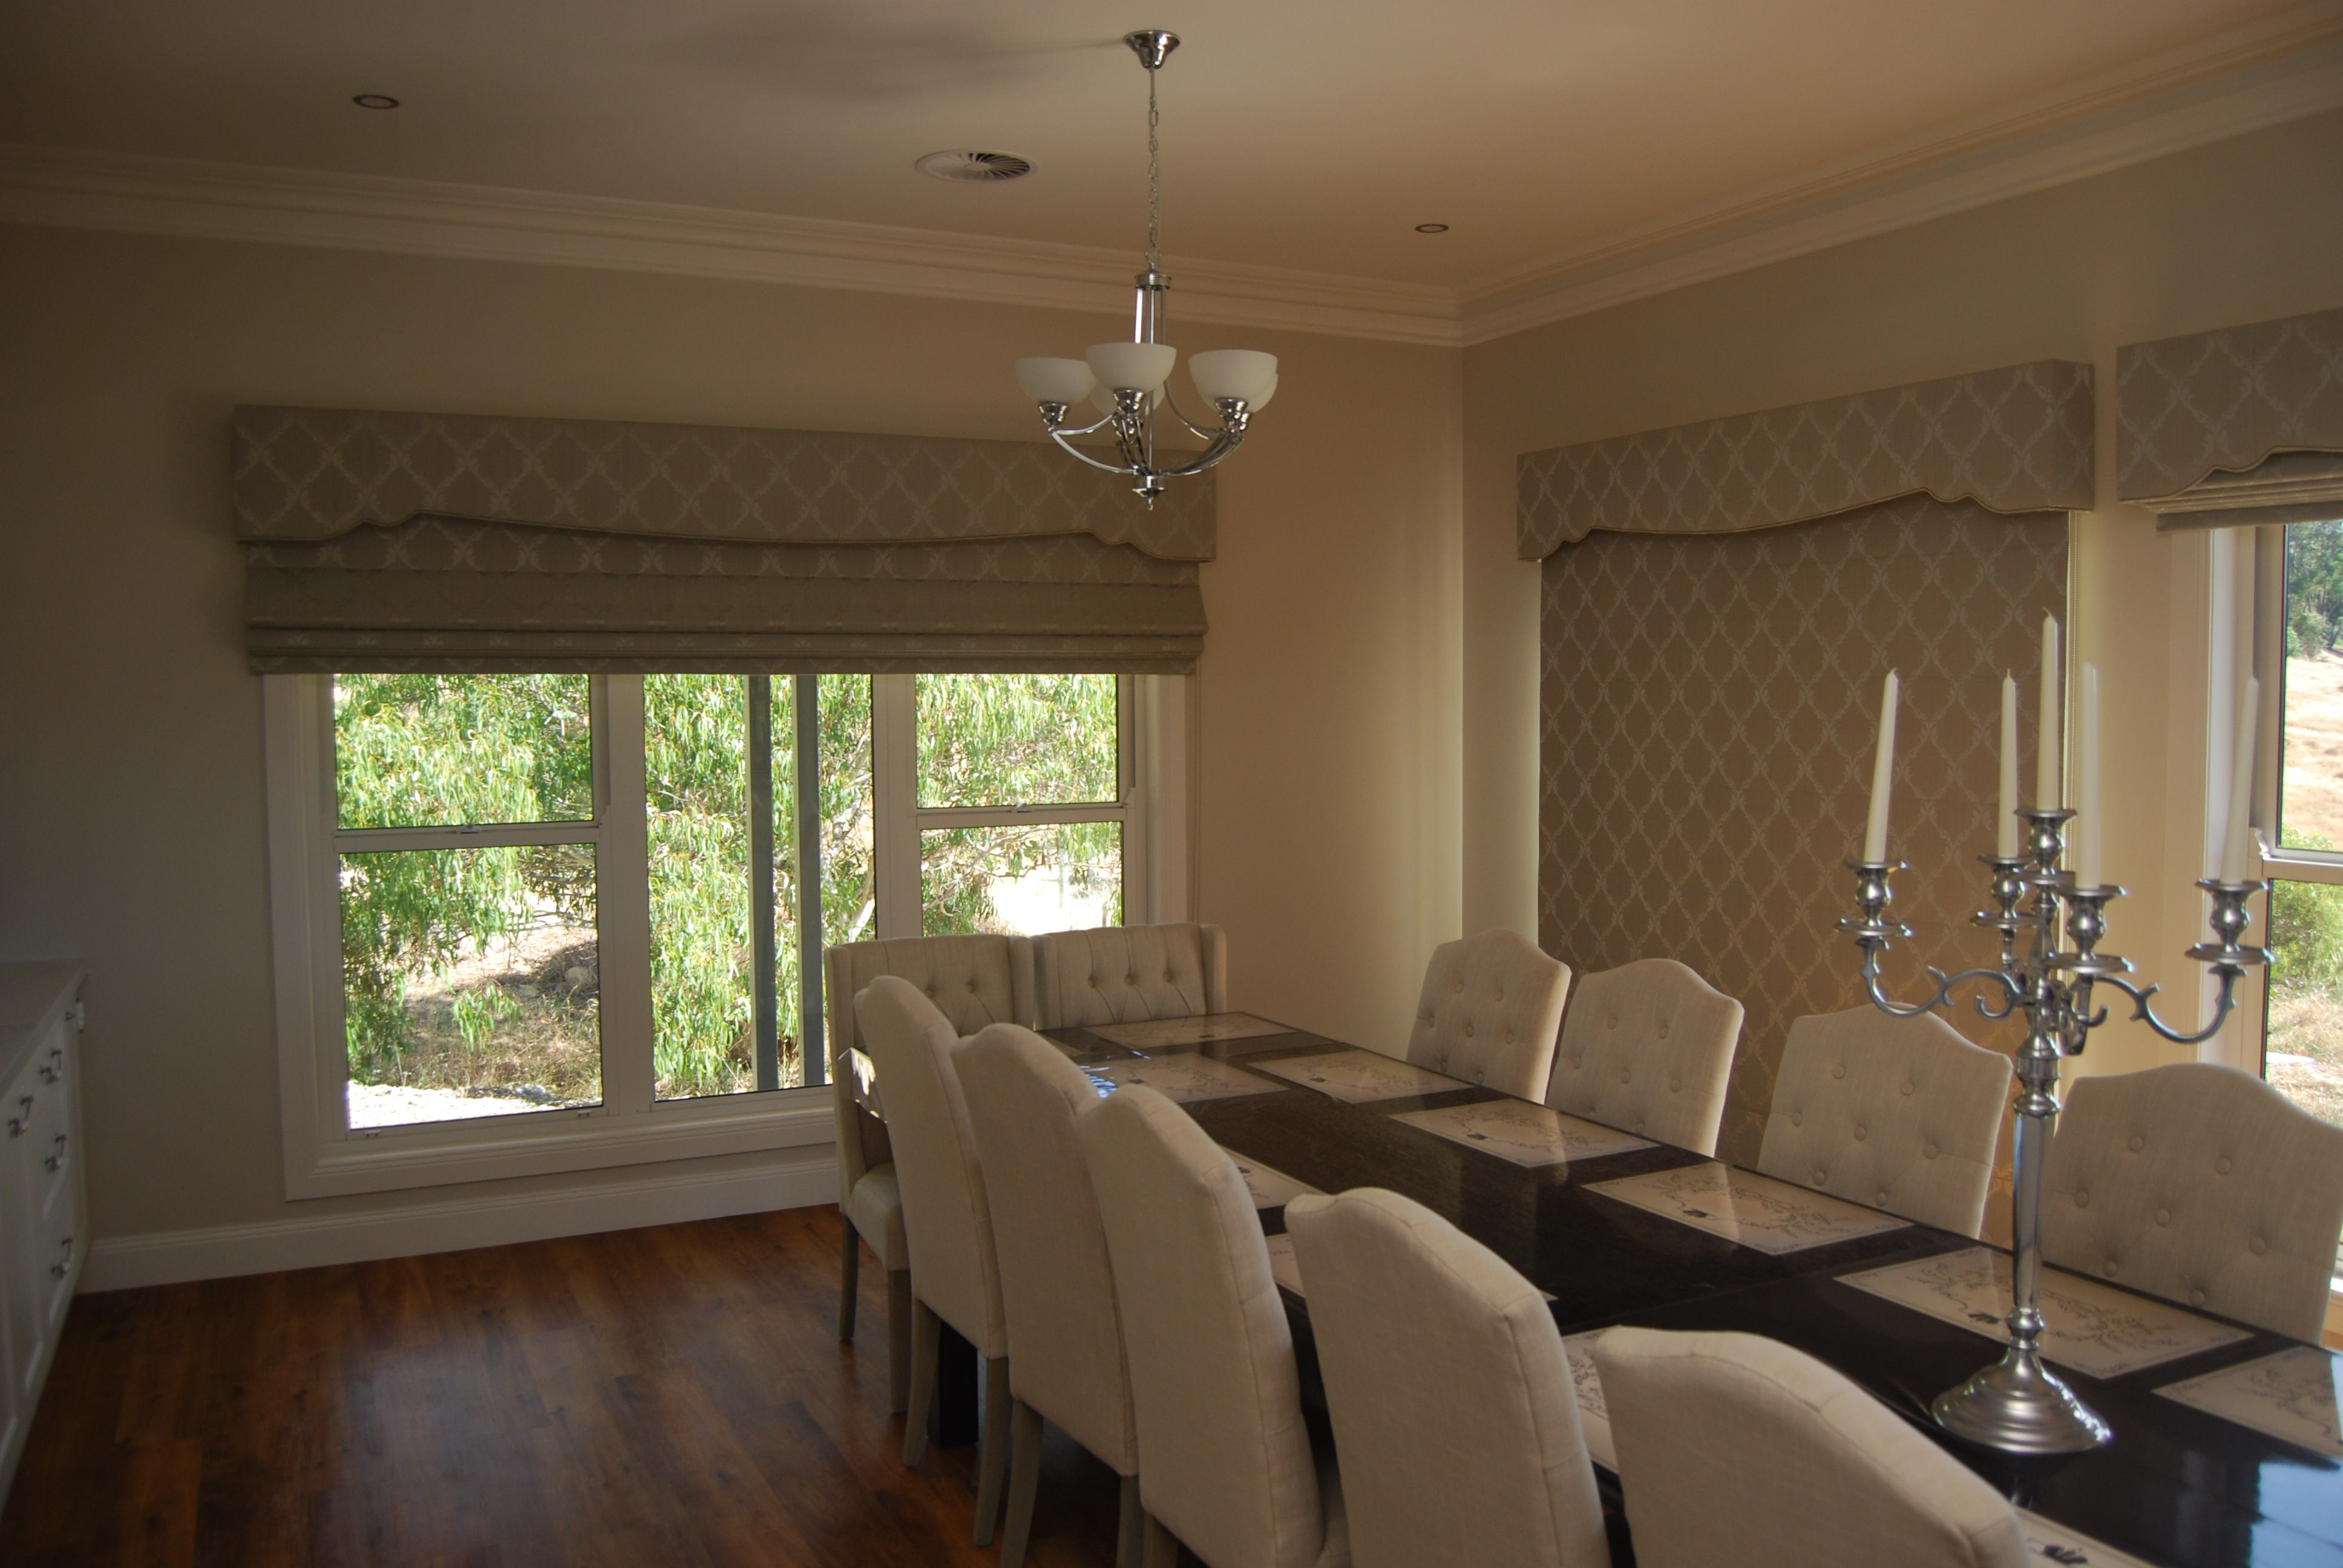 Soft Roman Blinds with Pelmets in Dining Room_0.JPG